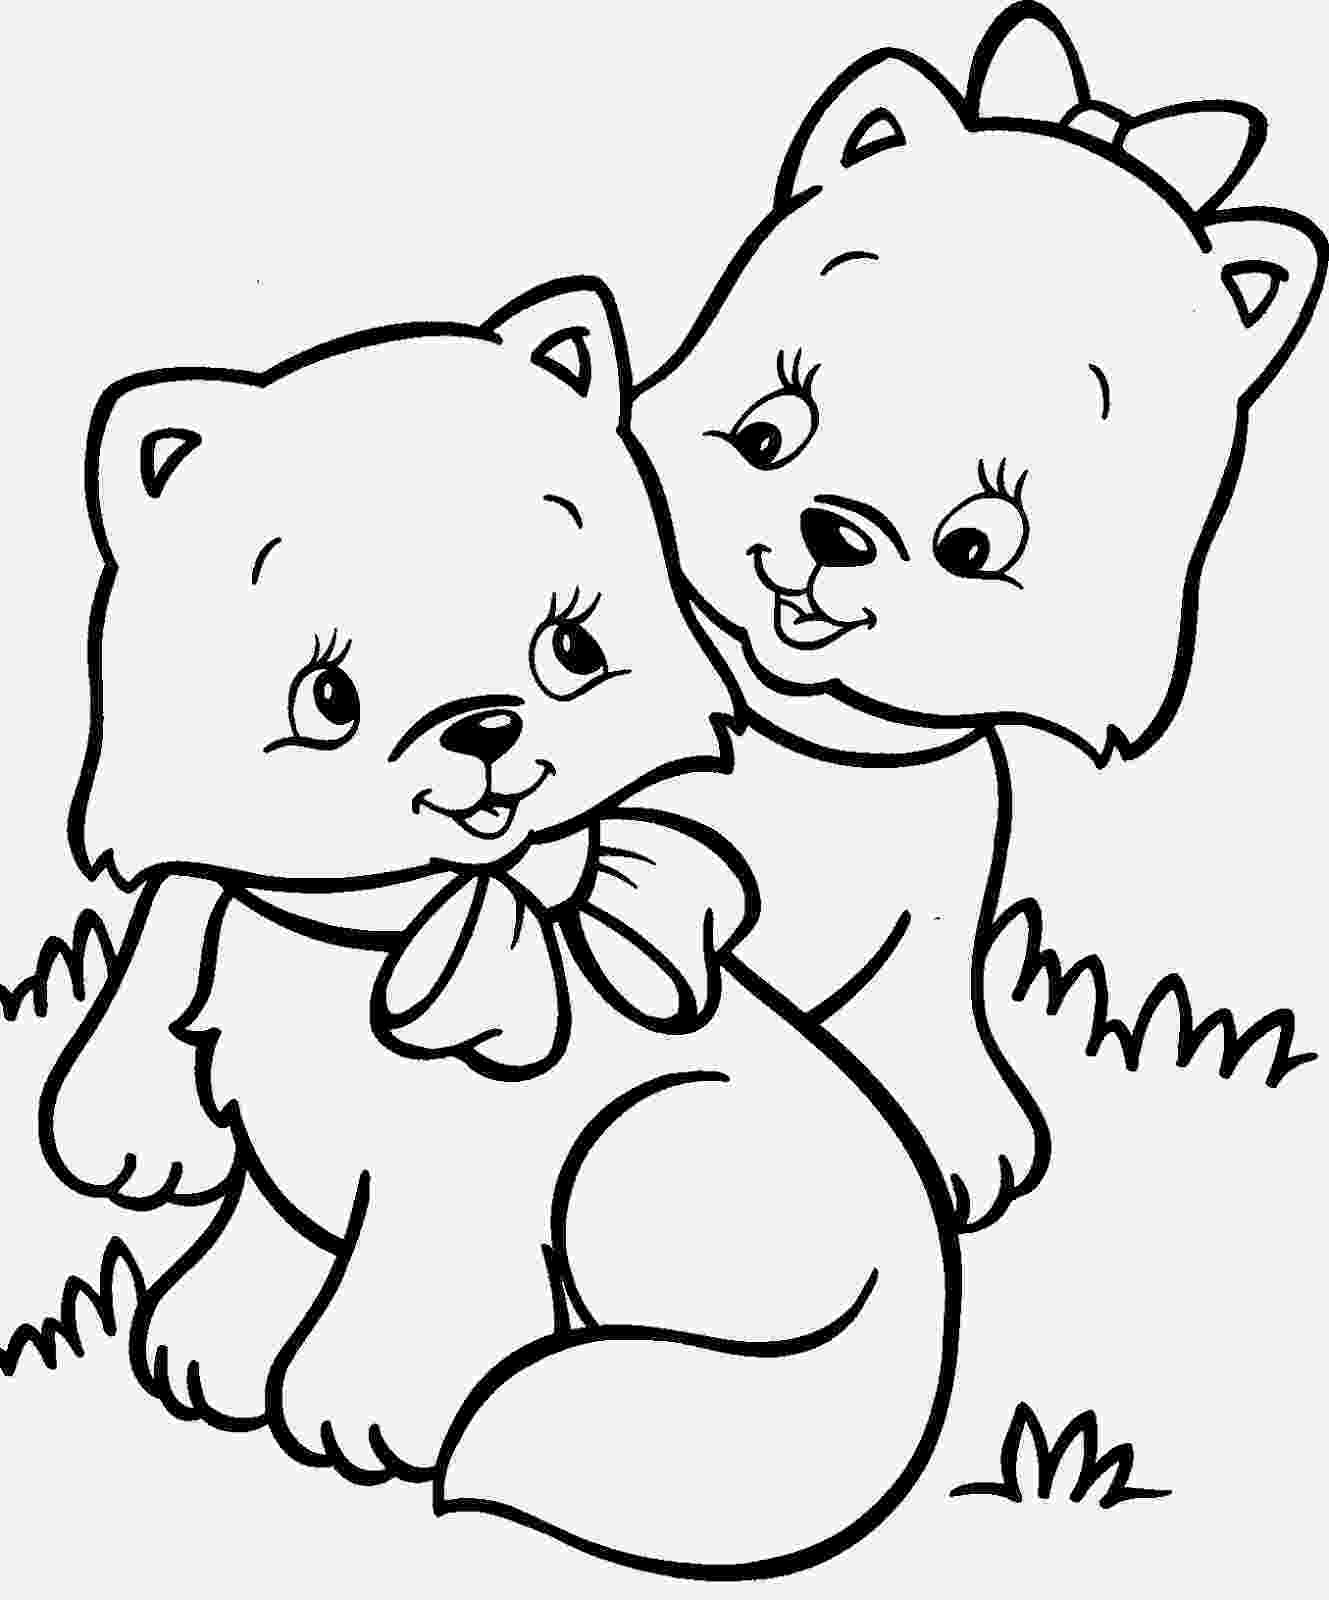 coloring pictures of cats and dogs cute cats and dogs coloring pages for print of and coloring pictures cats dogs